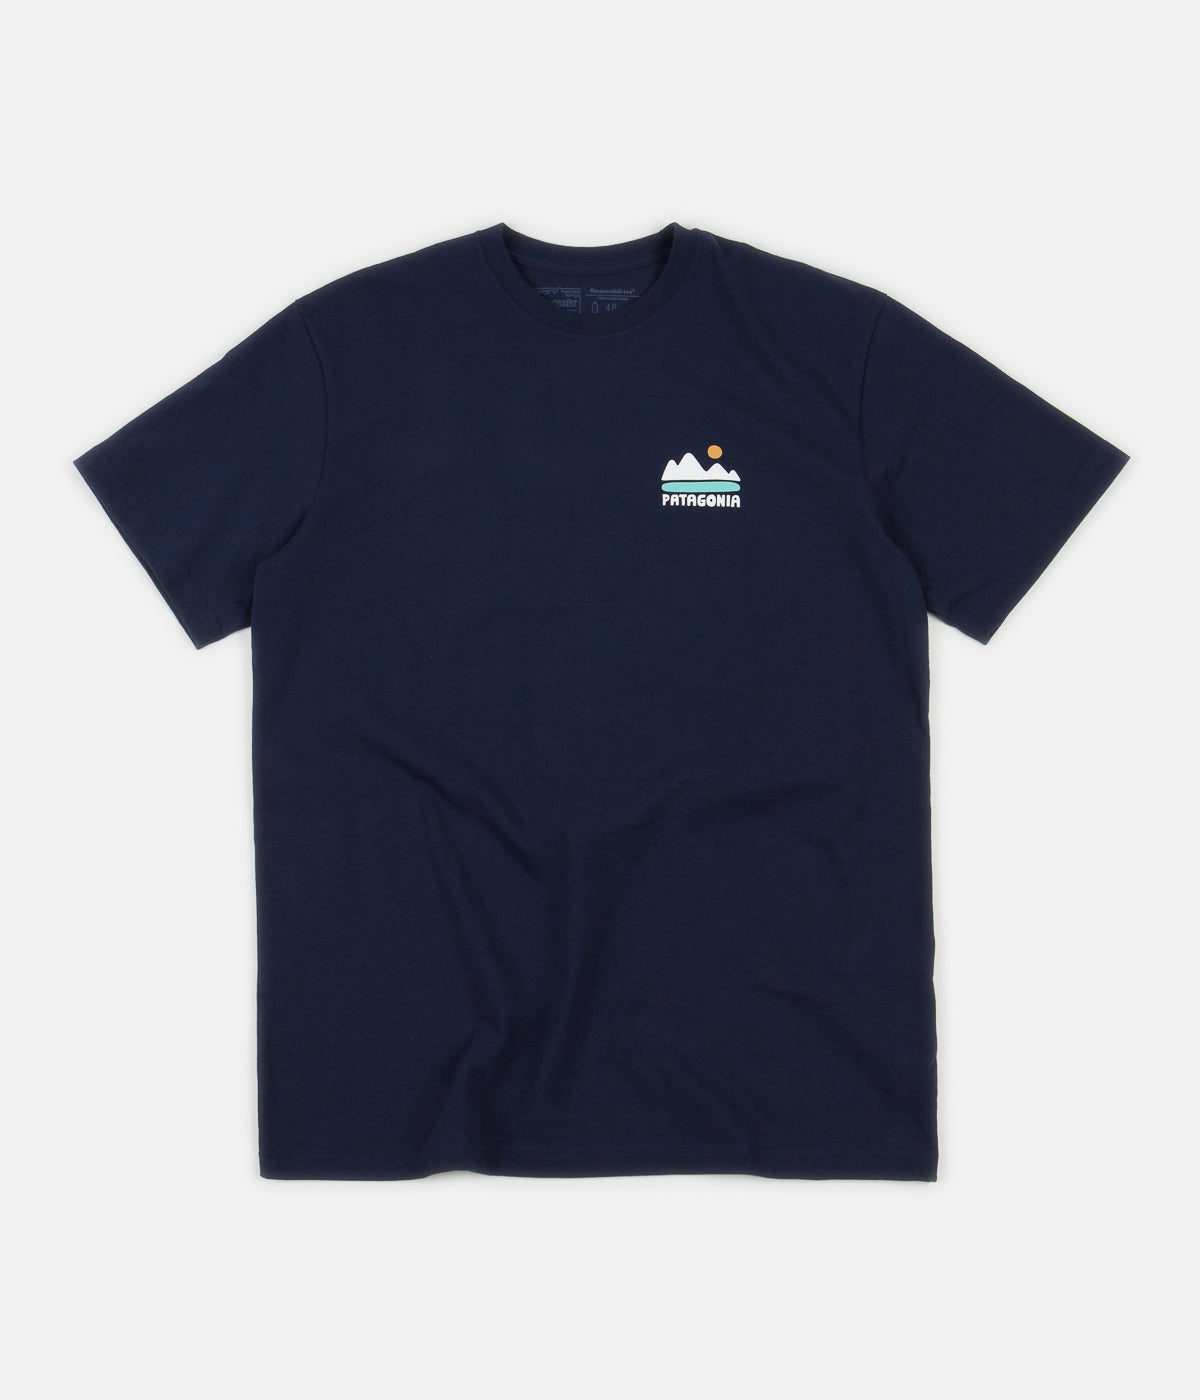 Patagonia Fed Up With Melt Down Responsibili-Tee T-Shirt - Classic Navy